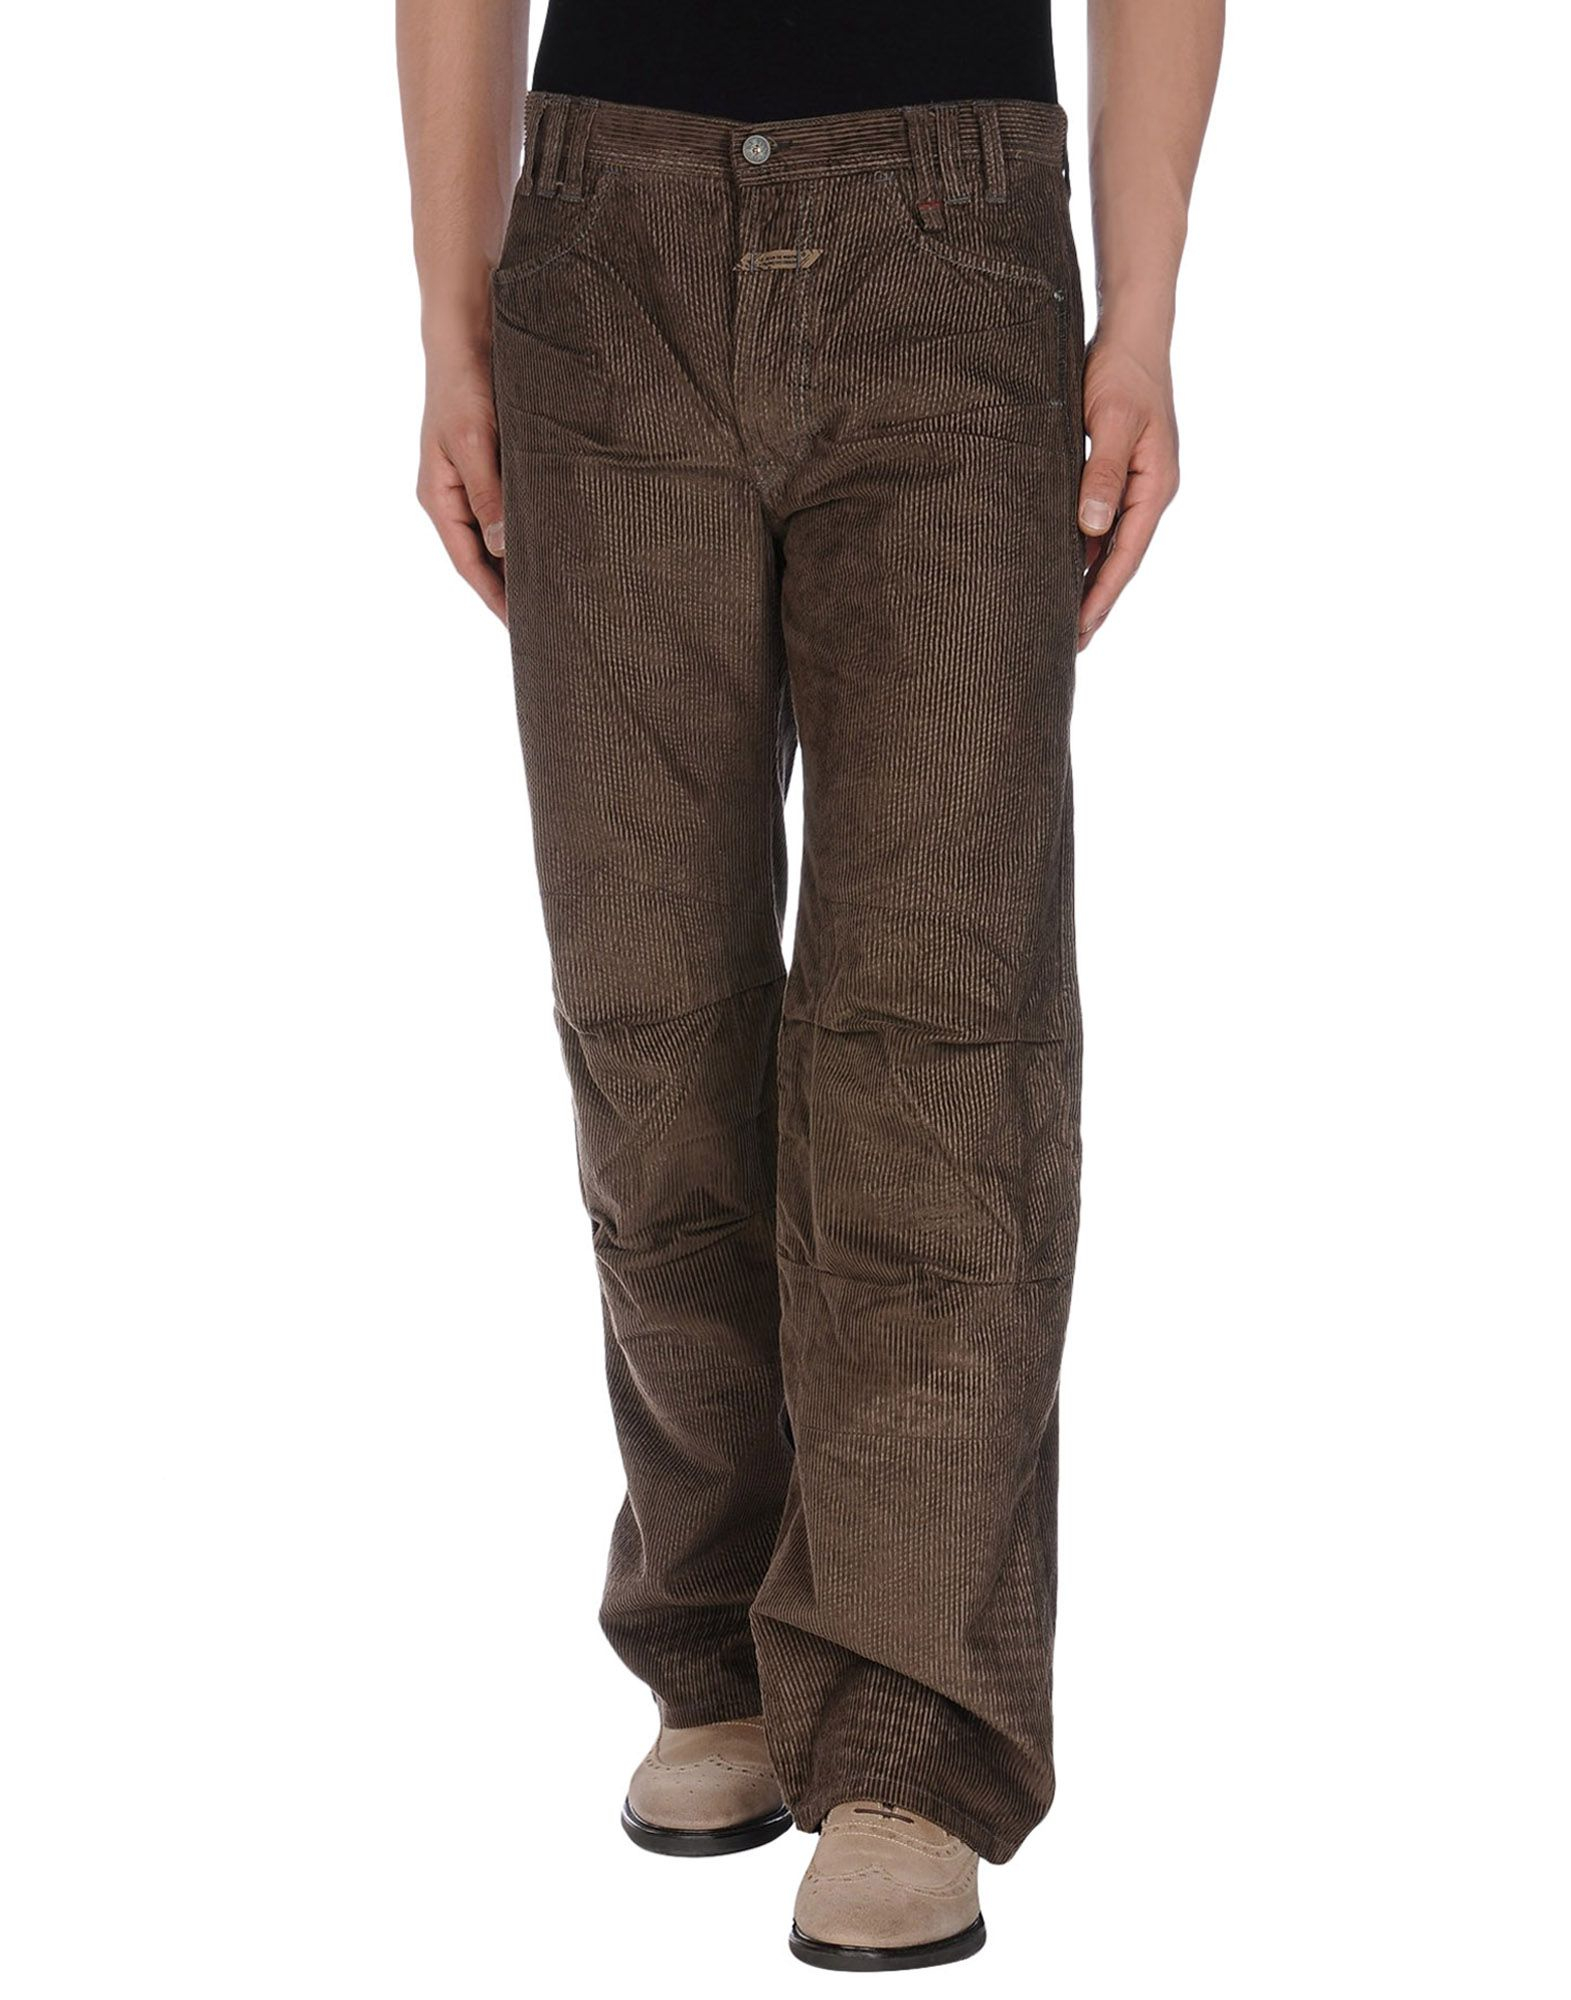 marith x fran ois girbaud casual pants in brown for men dark brown lyst. Black Bedroom Furniture Sets. Home Design Ideas